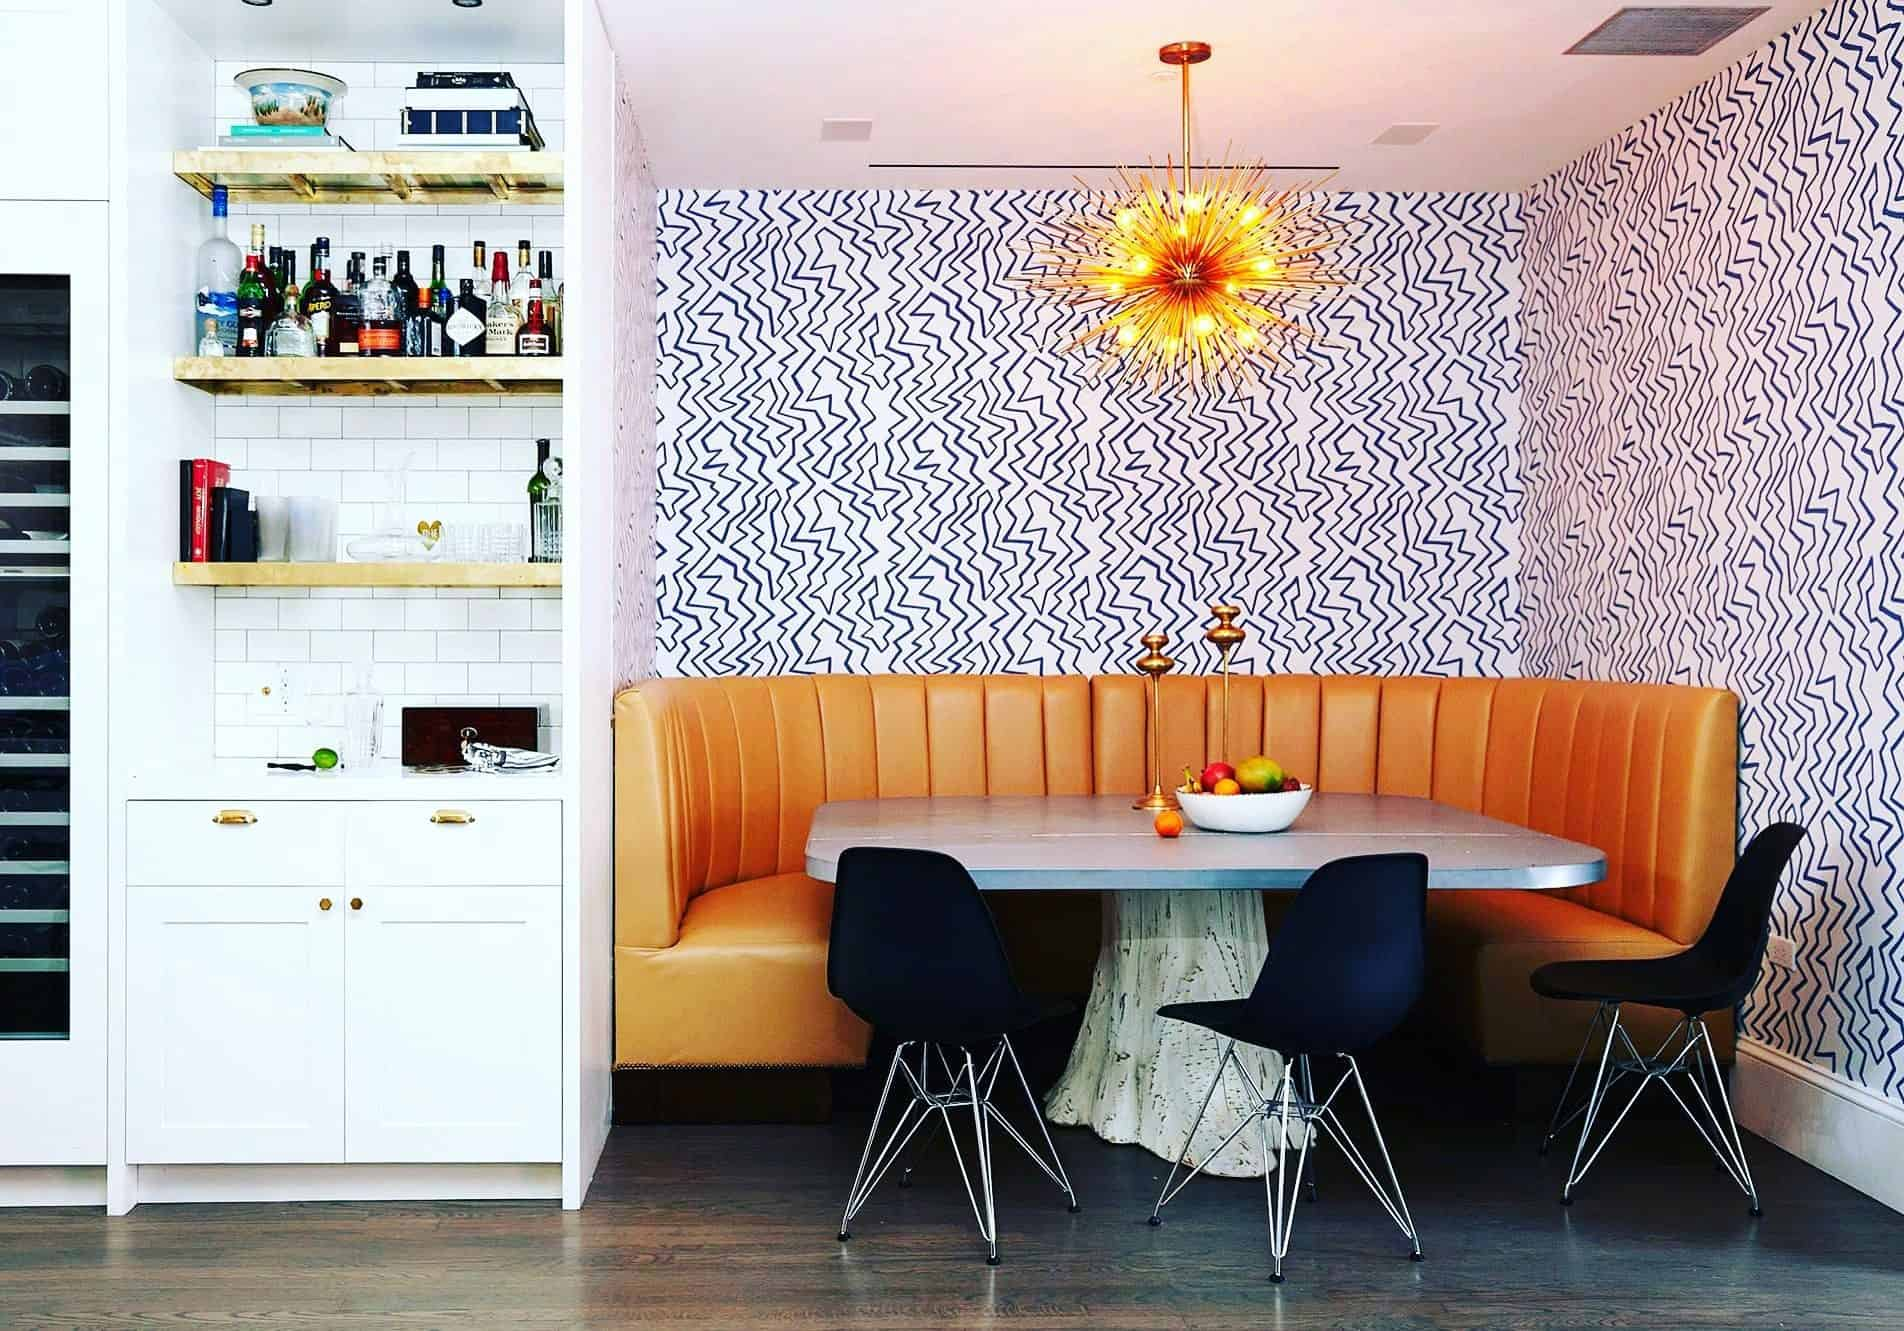 nook wallpaper Awesome This funky abstract wallpaper adds a modern touch to this breakfast